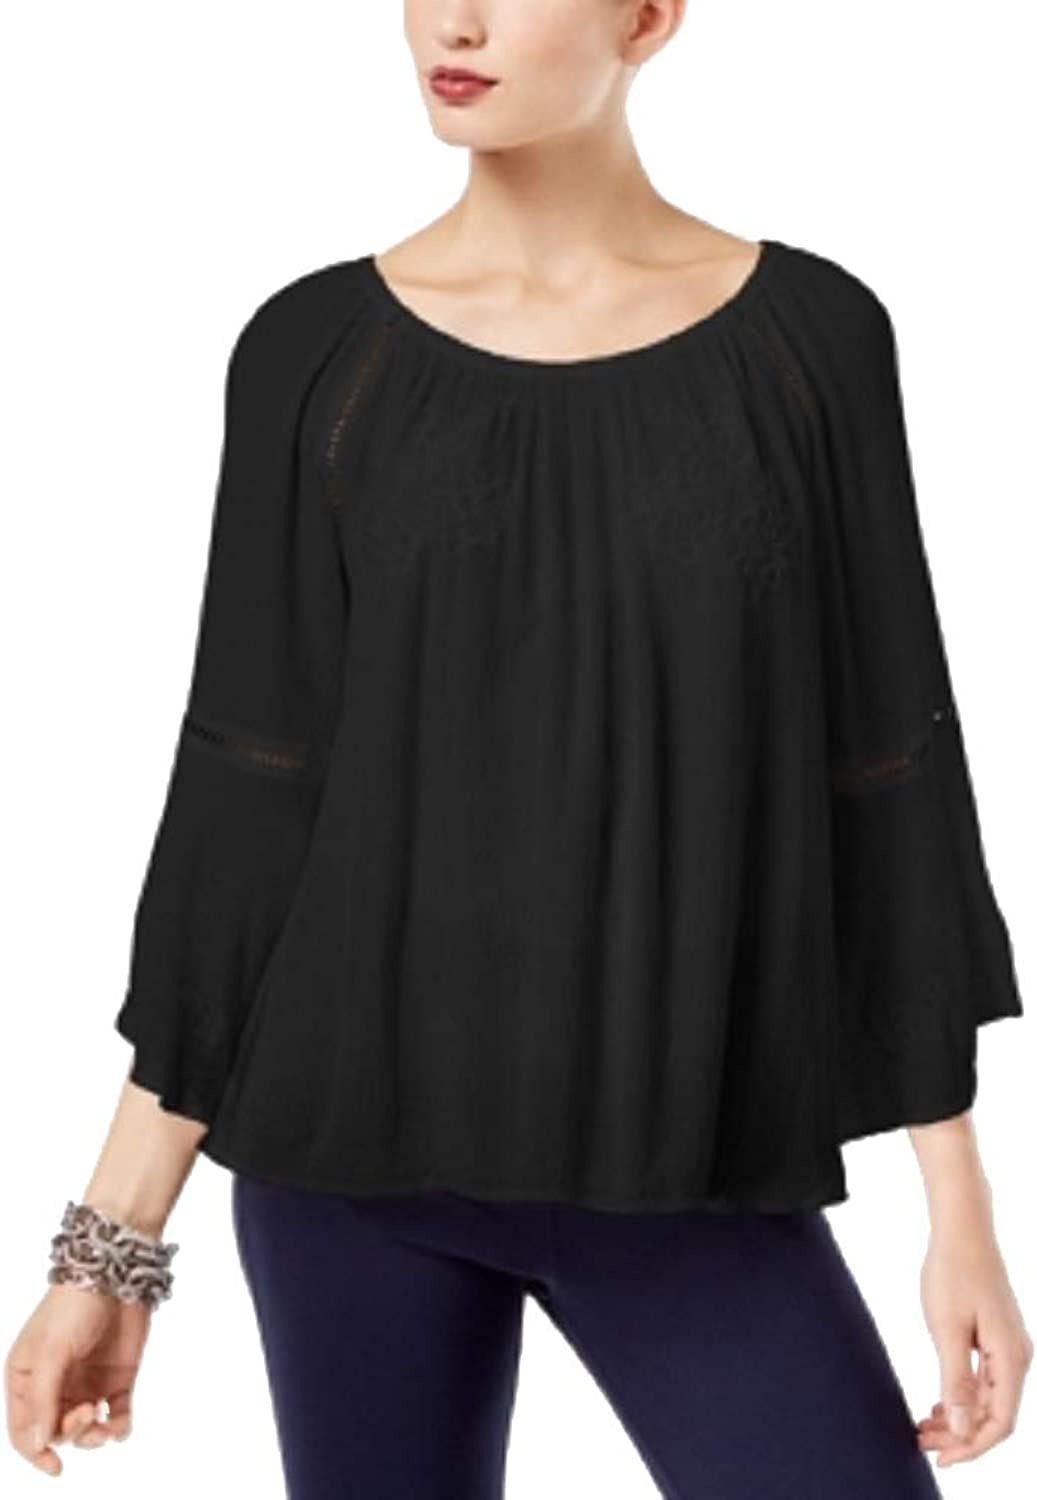 I.N.C. International Concepts Women's Embroidered Top